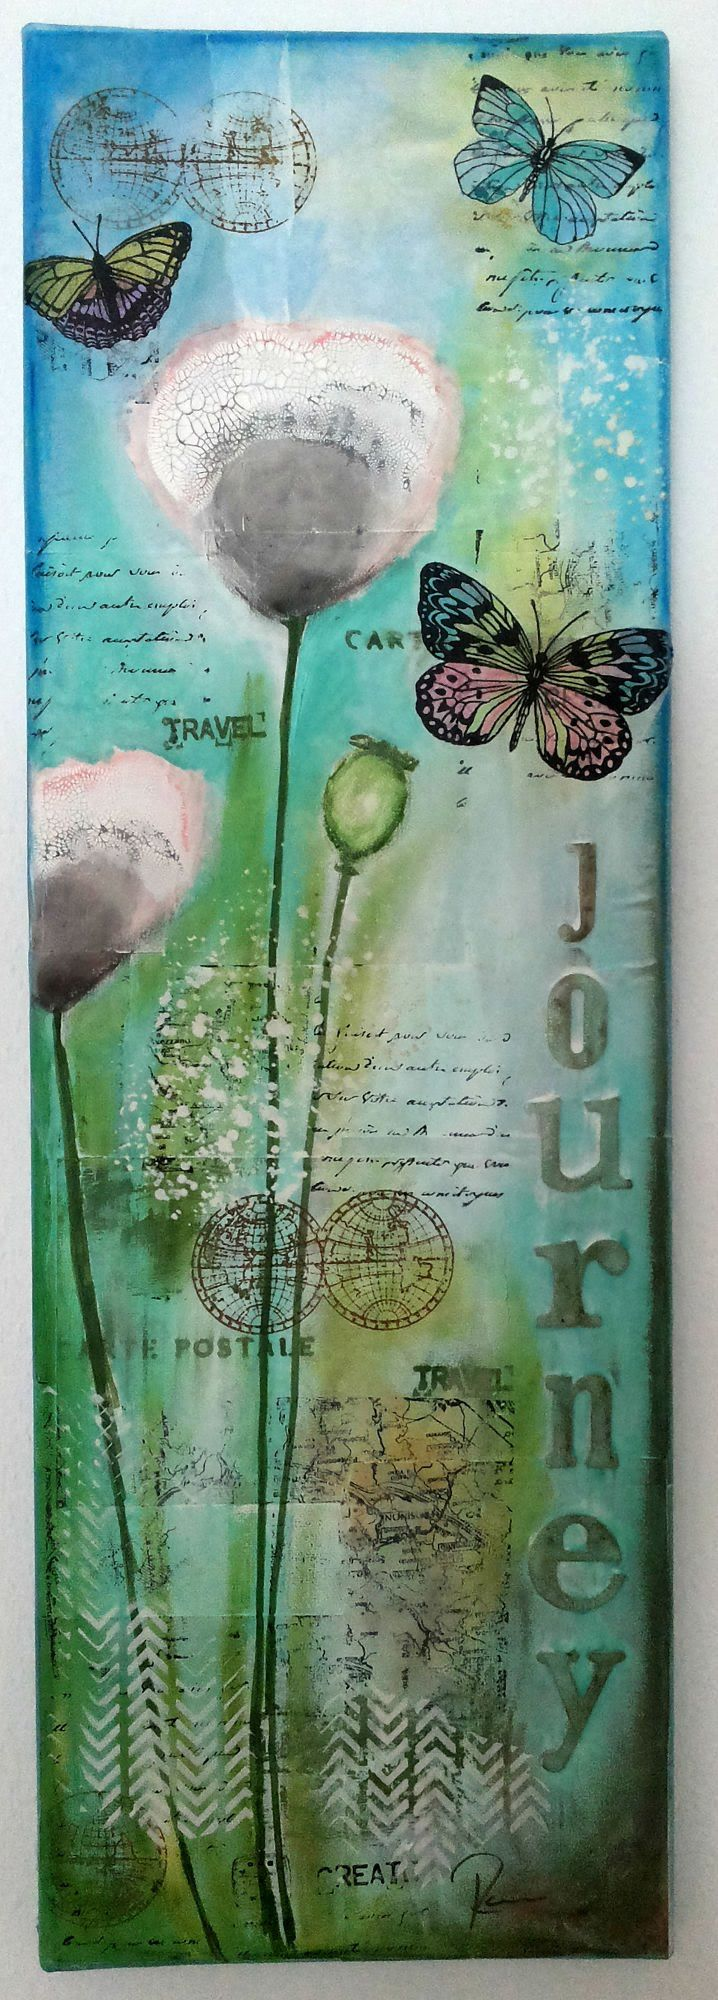 Mixed Media Canvas Tutorial using acrylic paints, Gelatos®, stamps (from Rubber Dance) and stencils, Distress Crackle Paint and pattern paper.